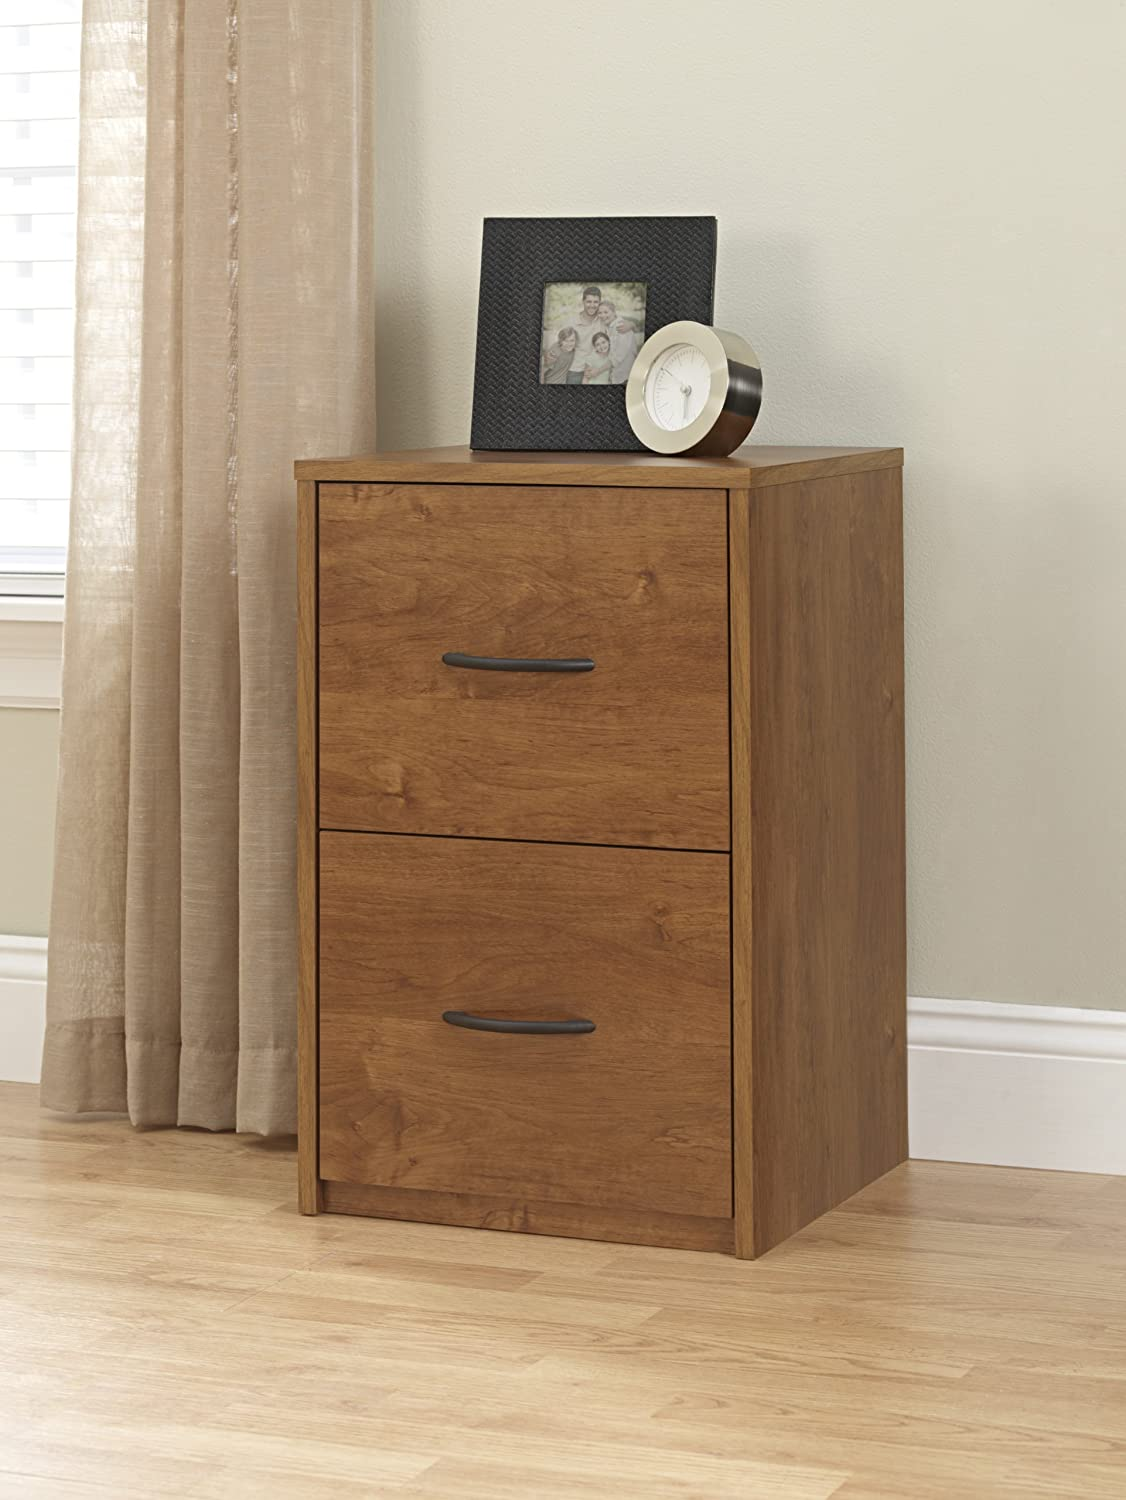 oak of full inside file staples cabinets beautiful image lateral wood lock locking cabinet amazing ideas with for drawer wooden